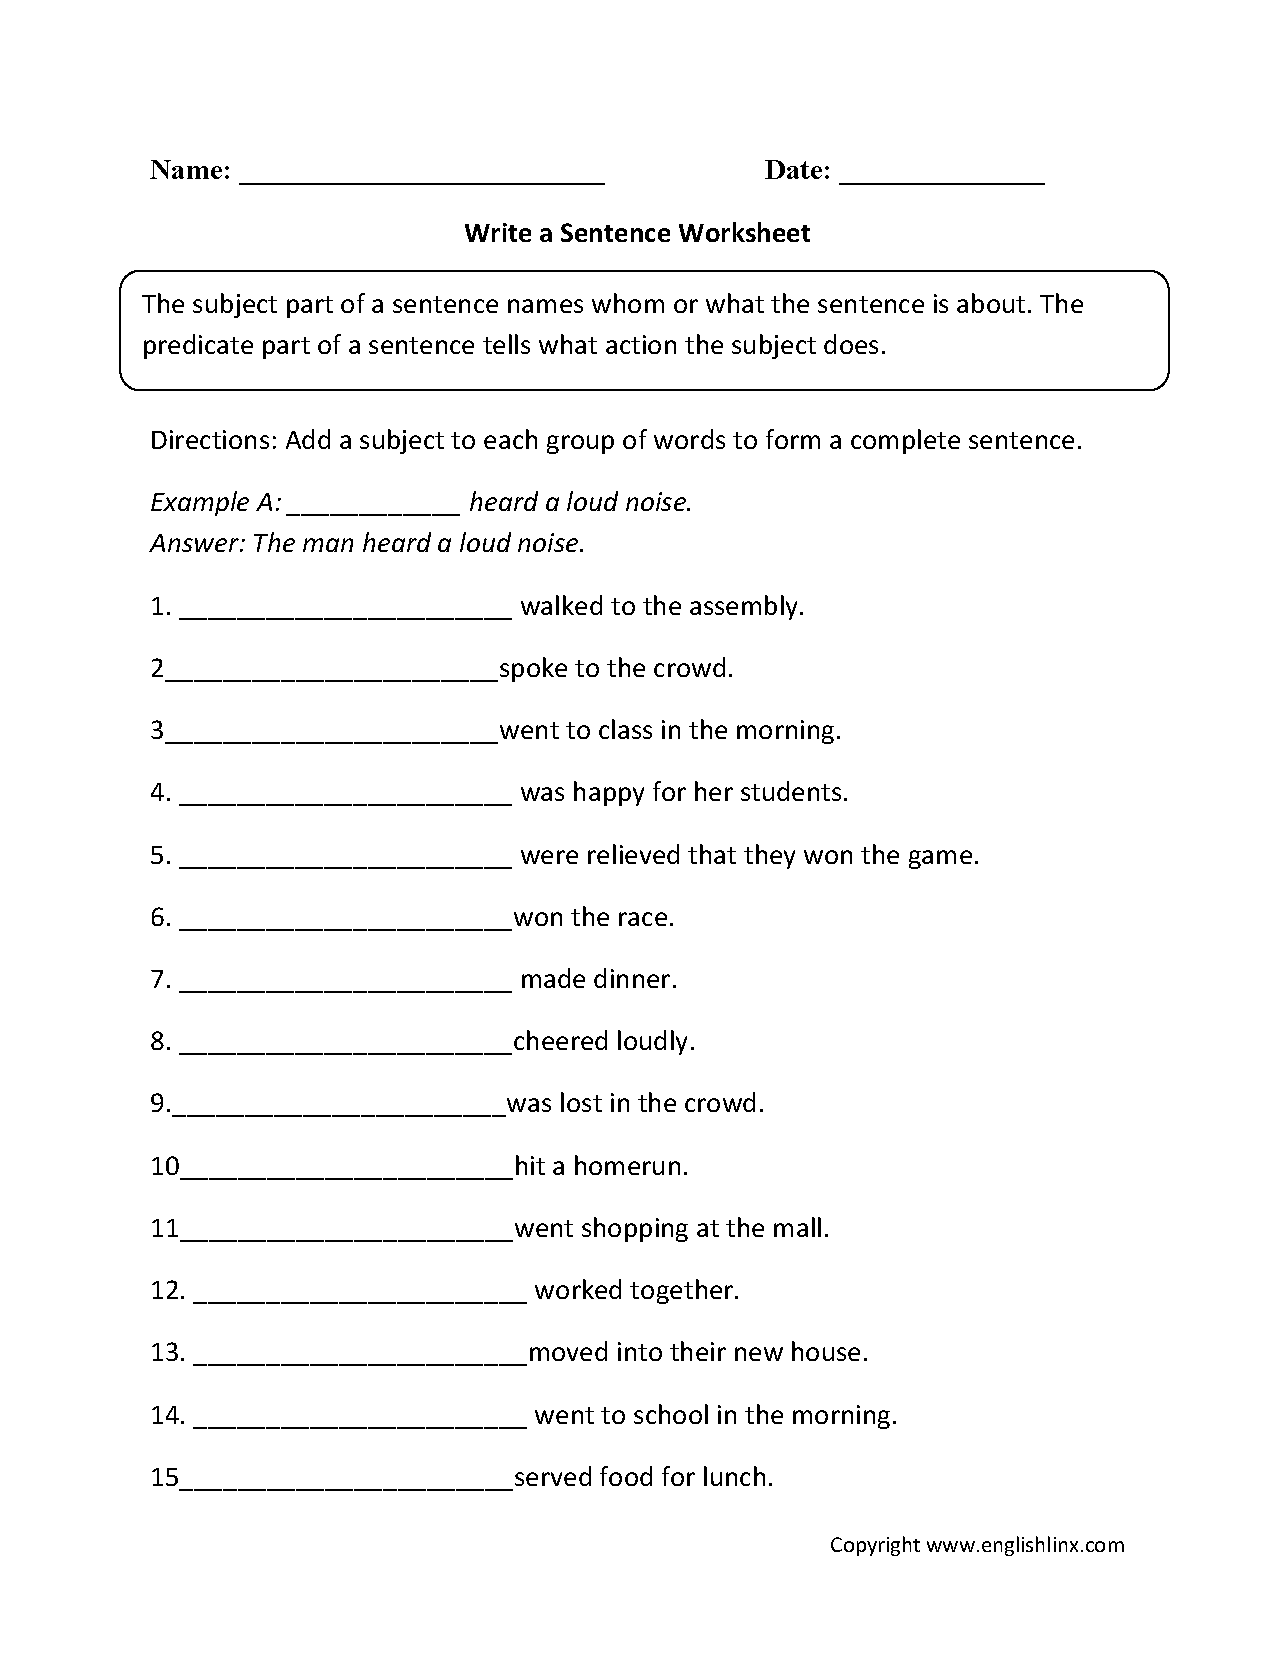 Worksheets Grammar Worksheets For 6th Grade sentence structure worksheets building worksheets